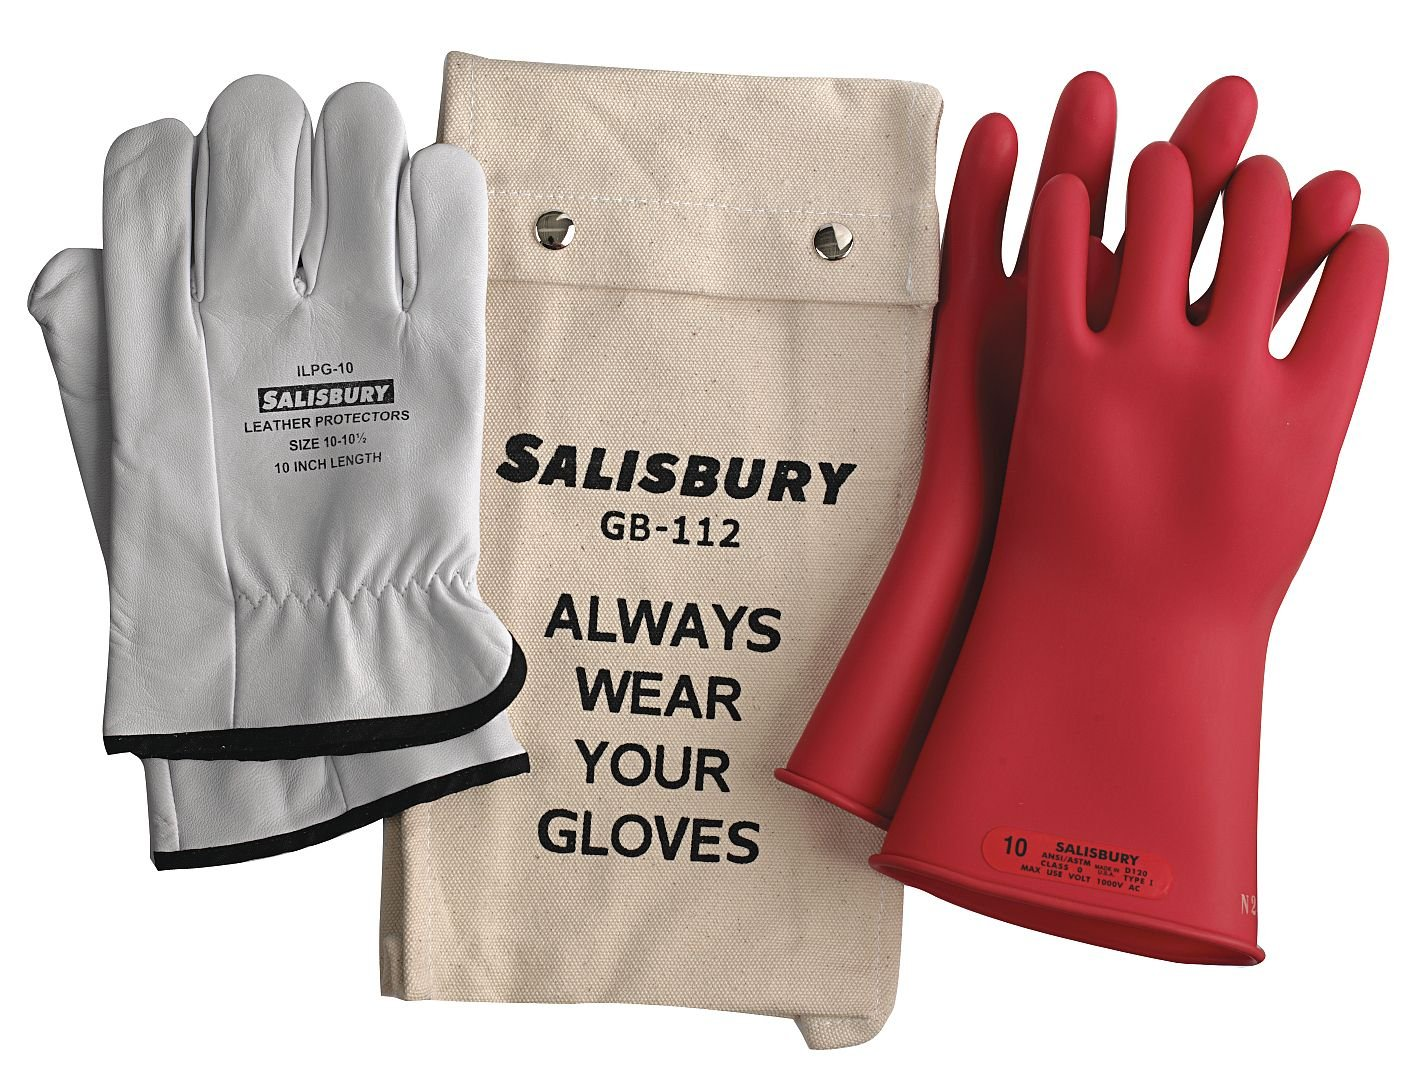 Salisbury by Honeywell GK011R11 Insulated Glove Kit, Class 0, Red, 11''L, Size 11; One Pair